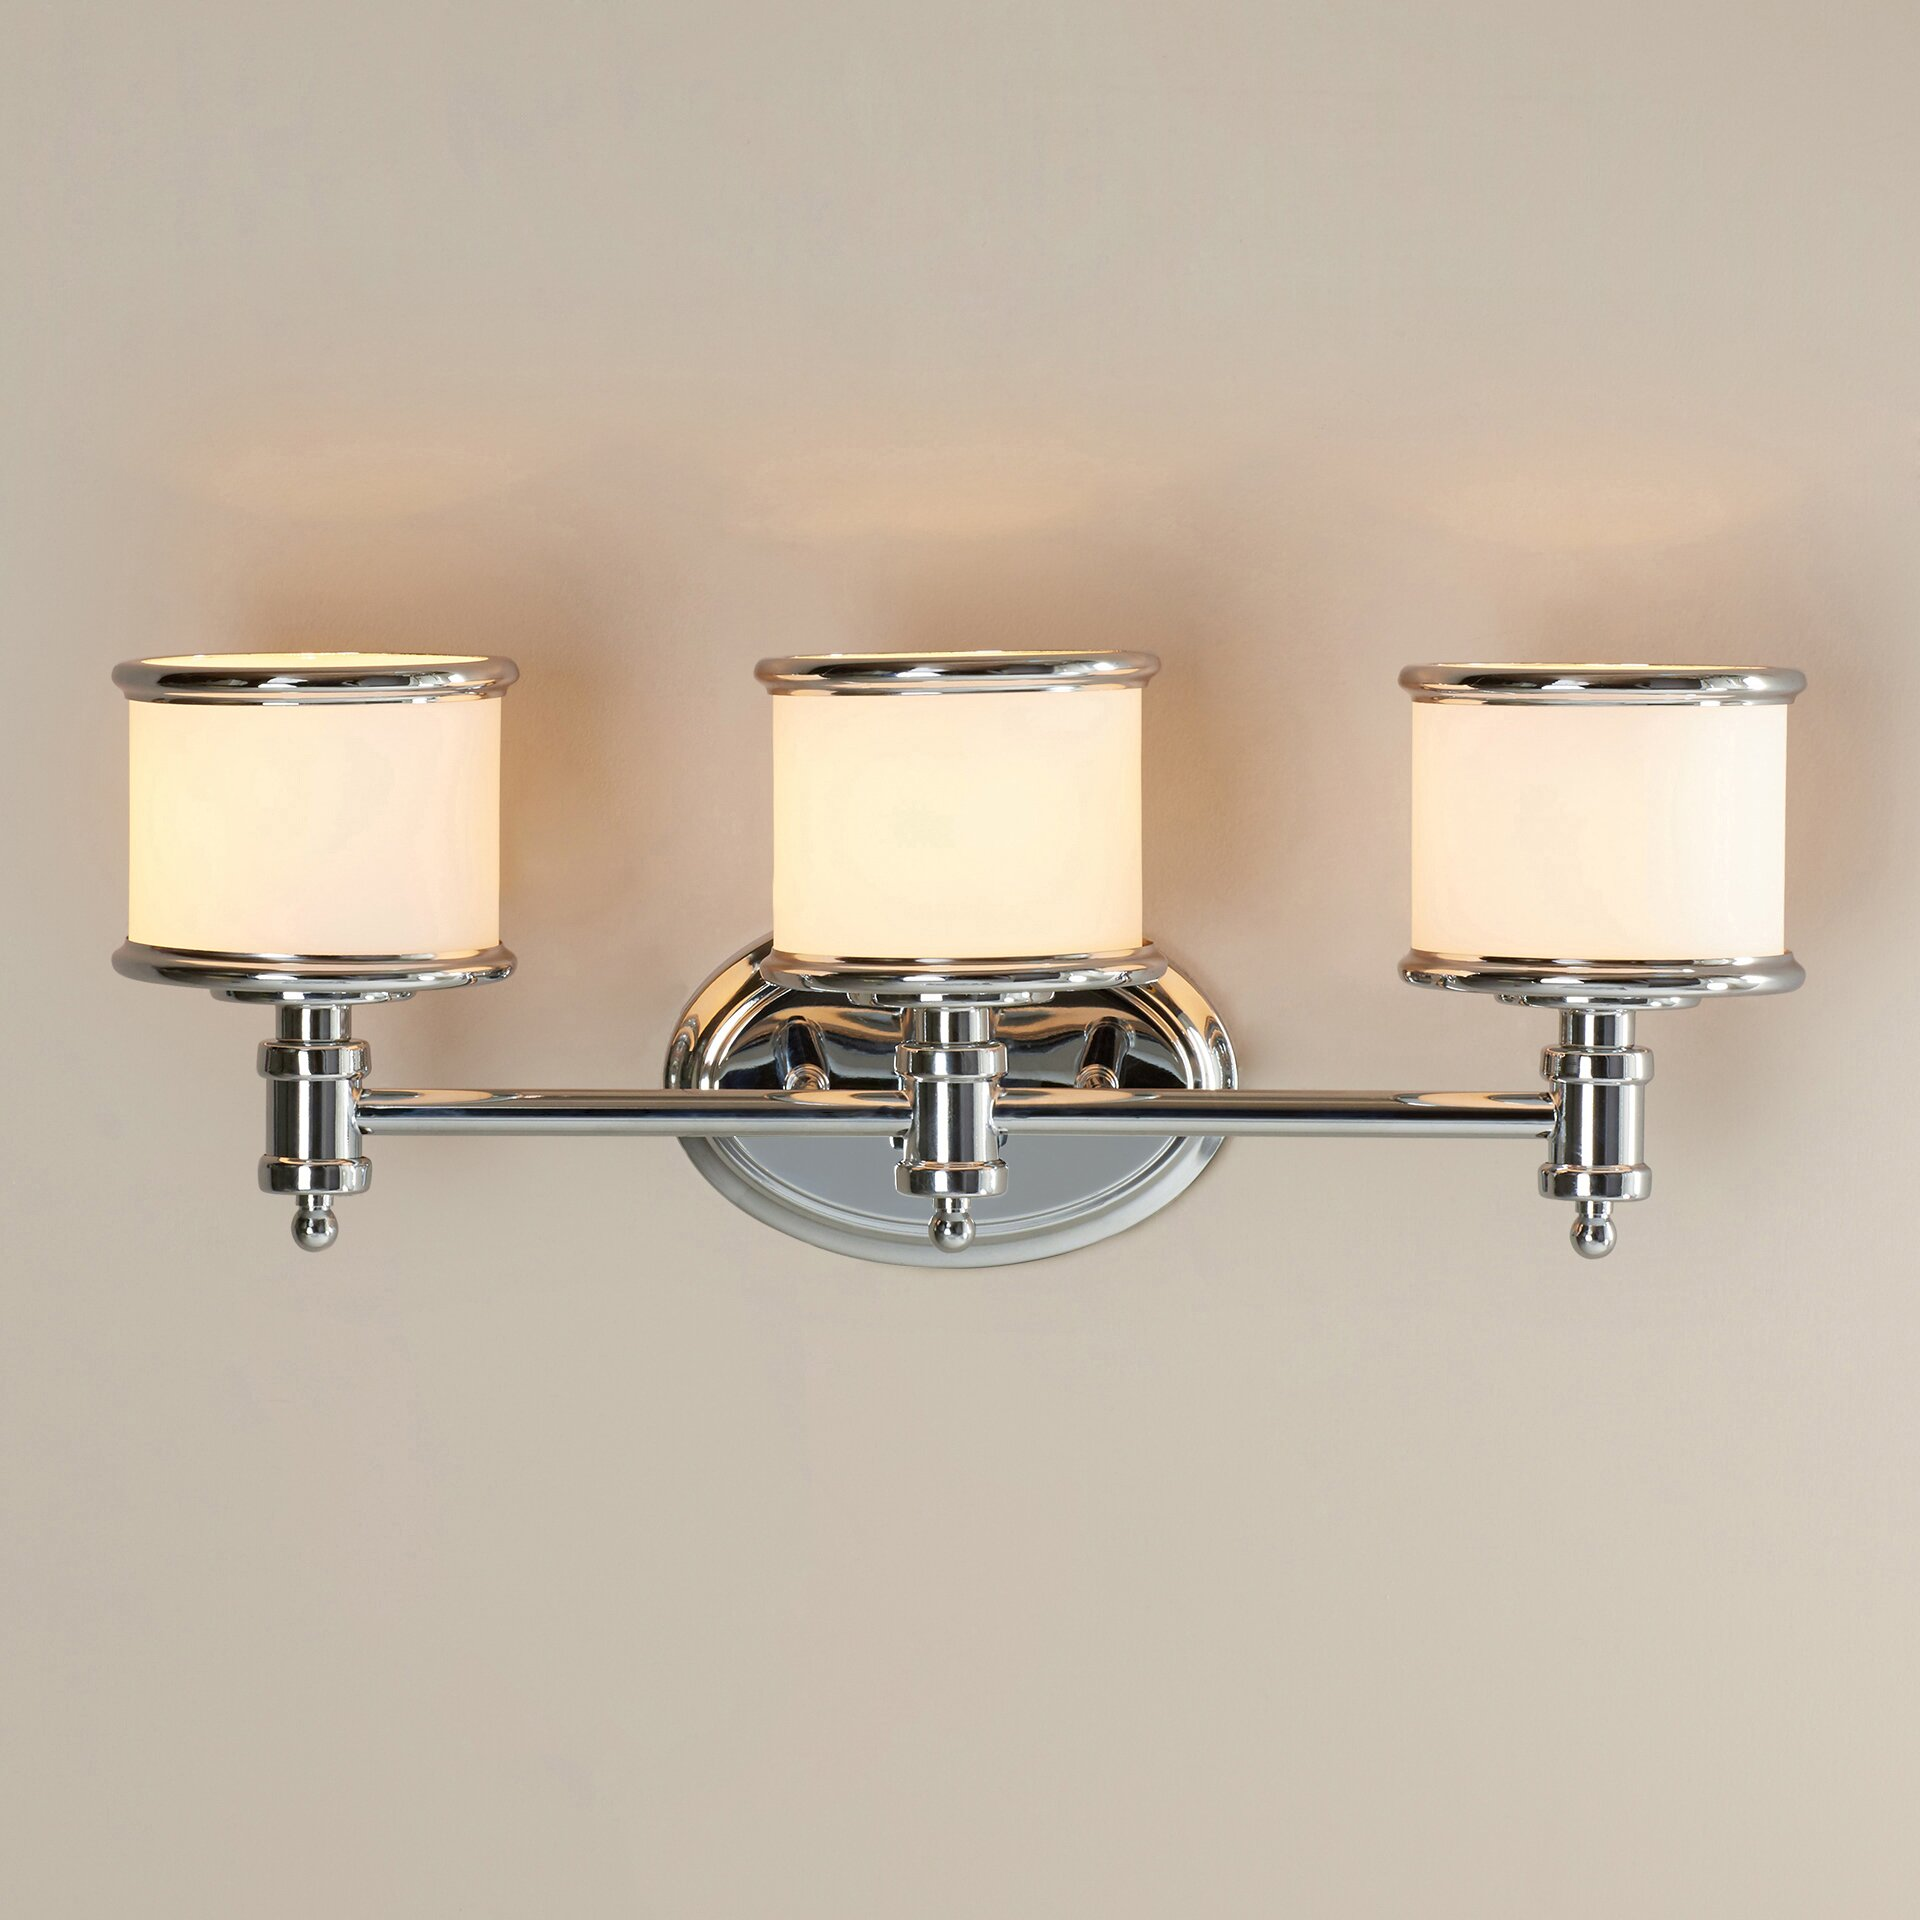 Vaxcel Carlisle 3 Light Vanity Light & Reviews